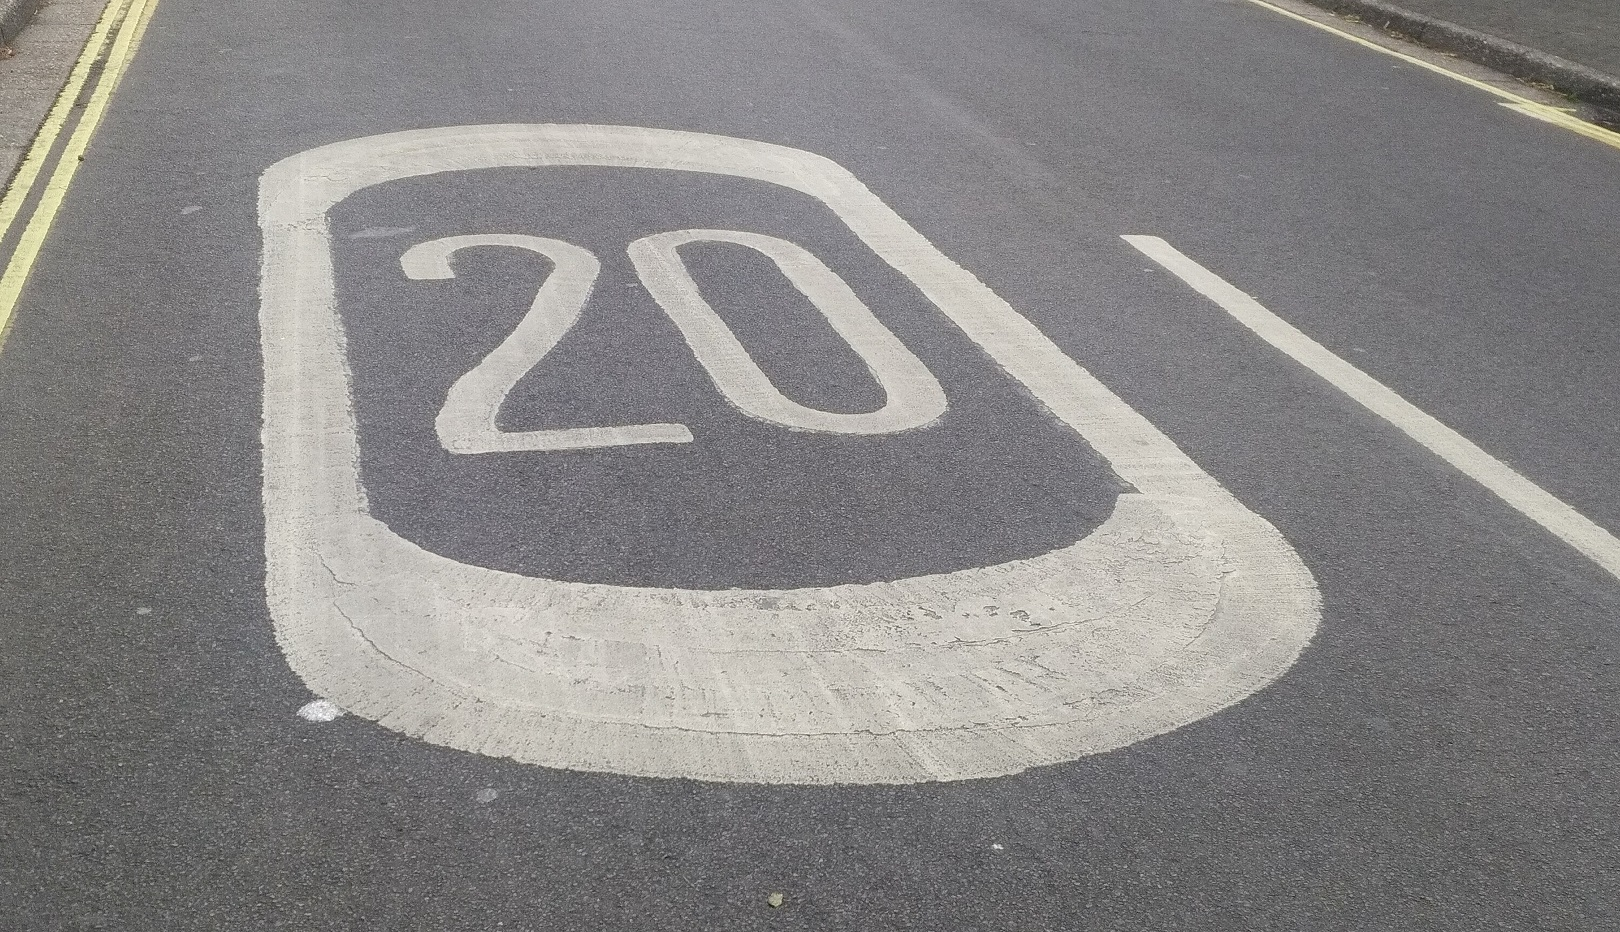 20mph speed limit review